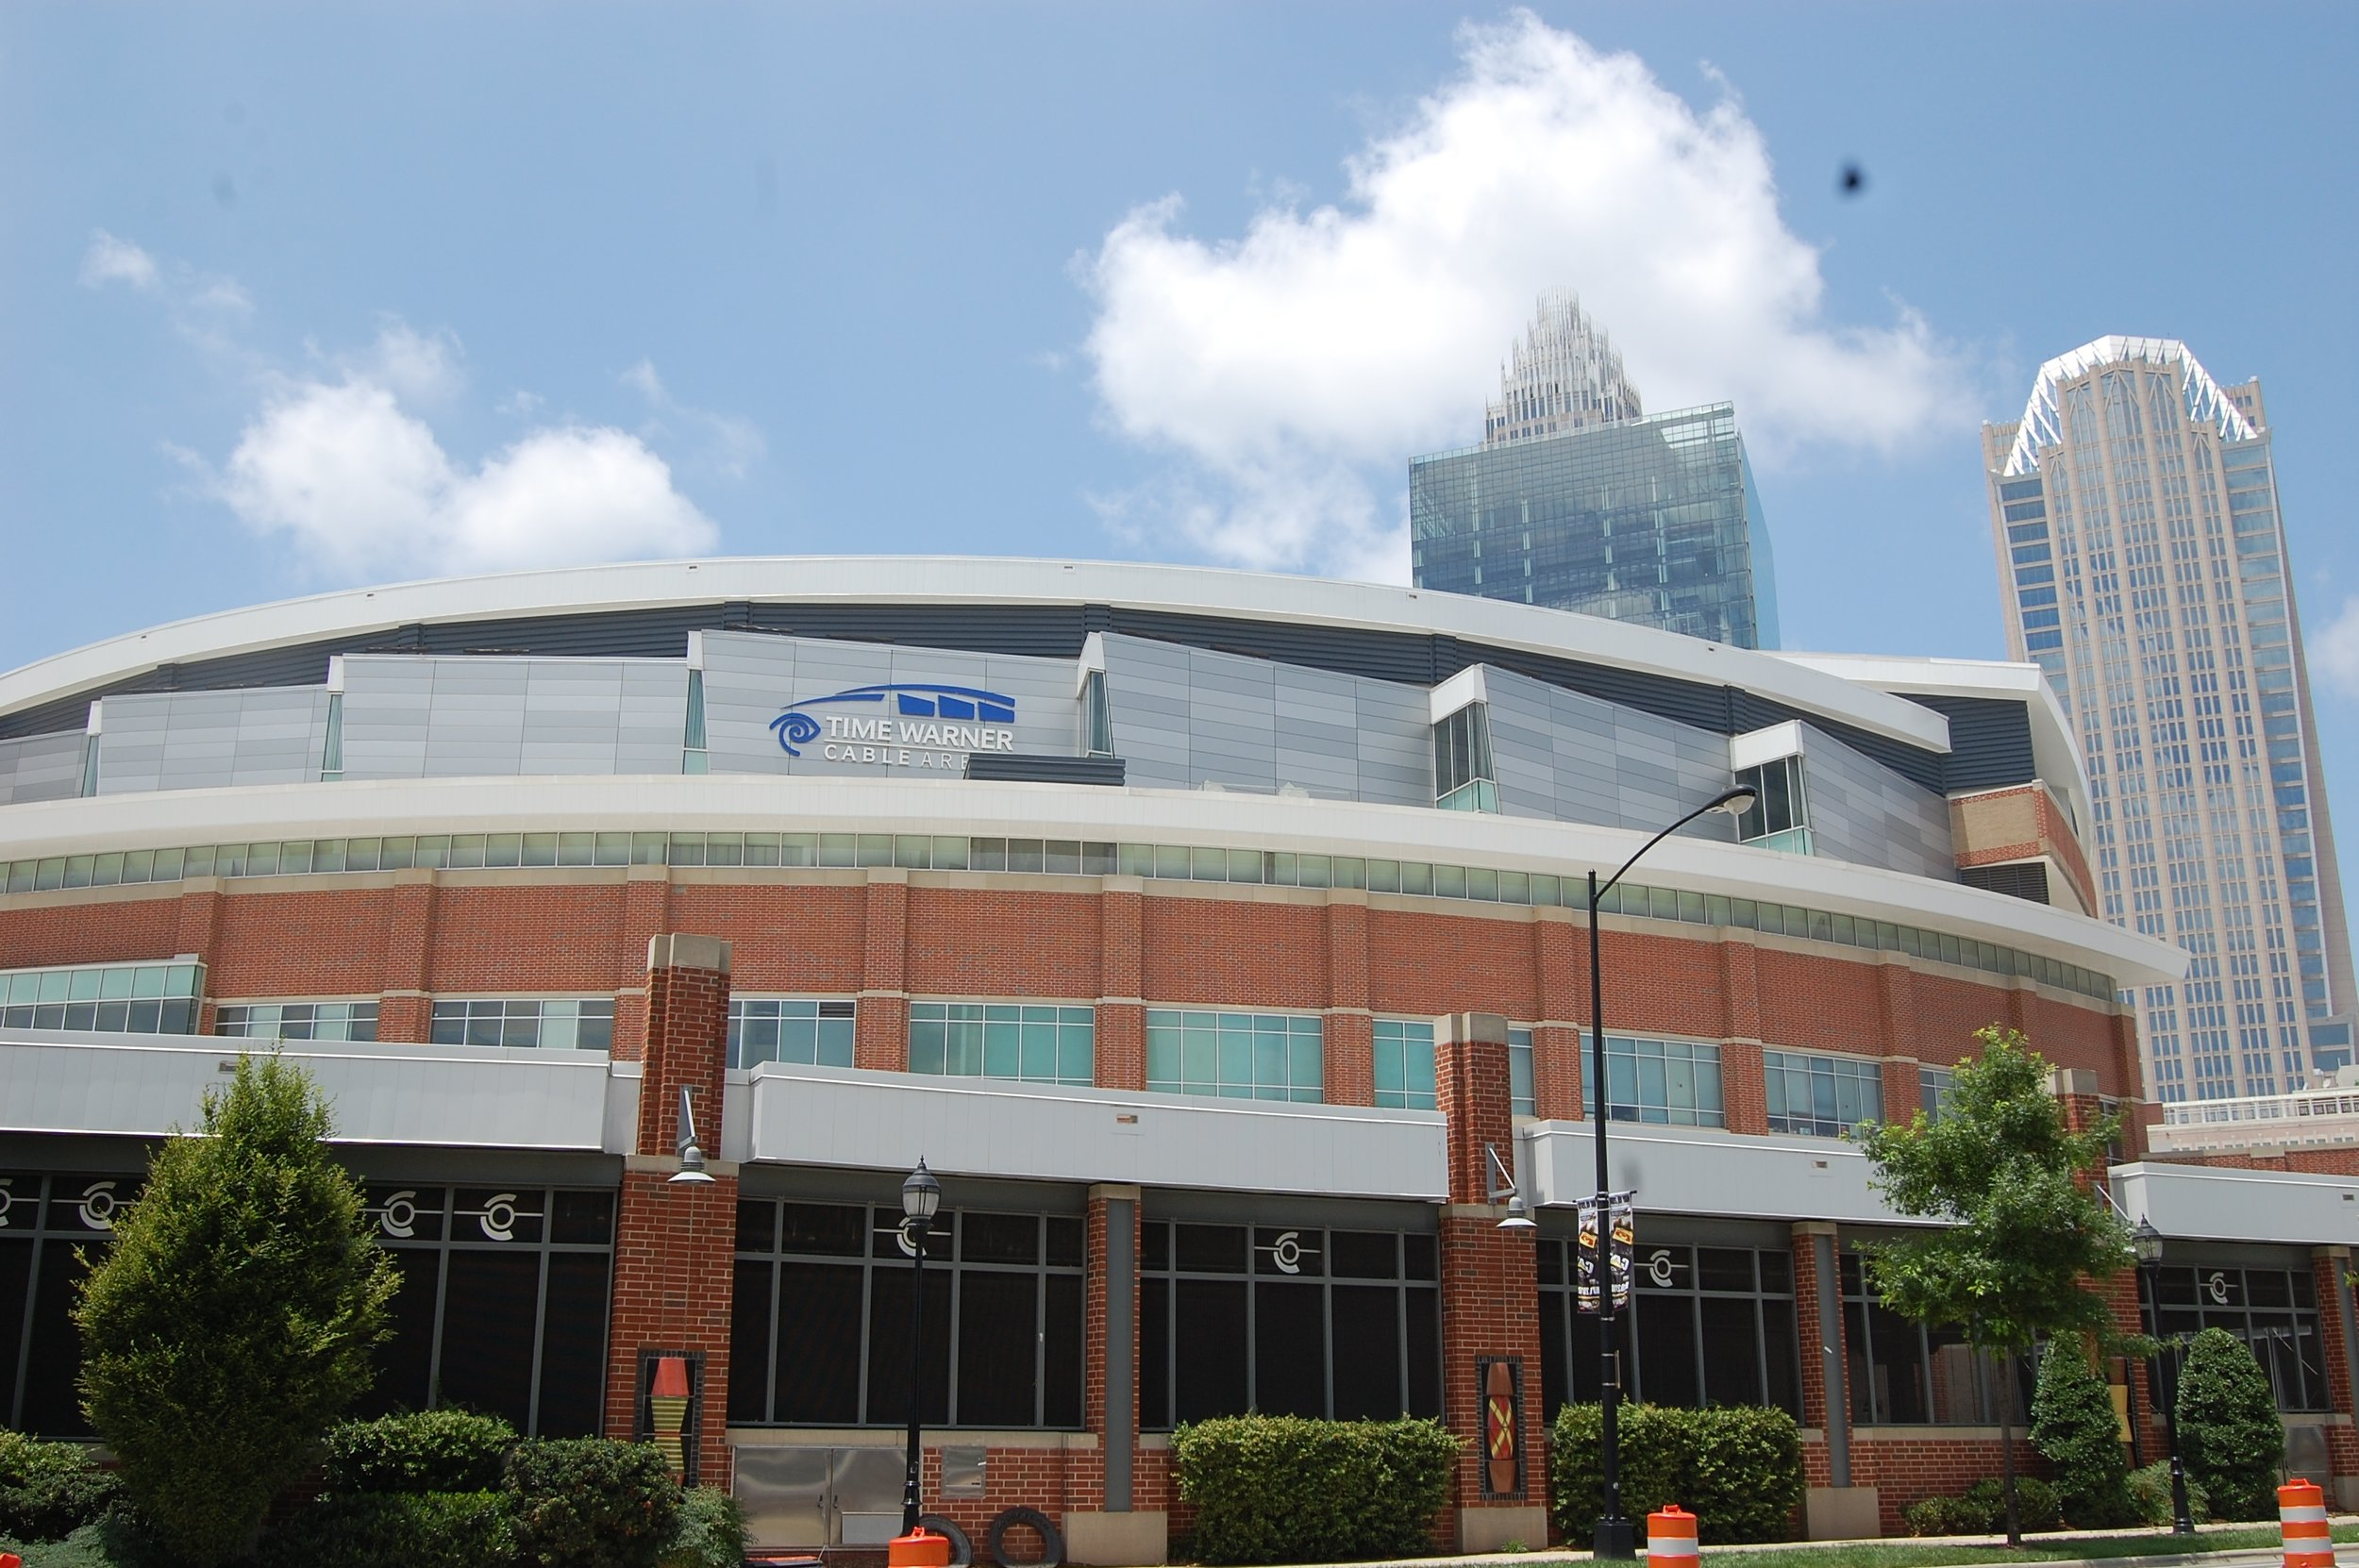 Time-Warner Arena - The Time-Warner Cable Arena project is 780,000 sq. ft. and used 500,000 lightweight concrete masonry units